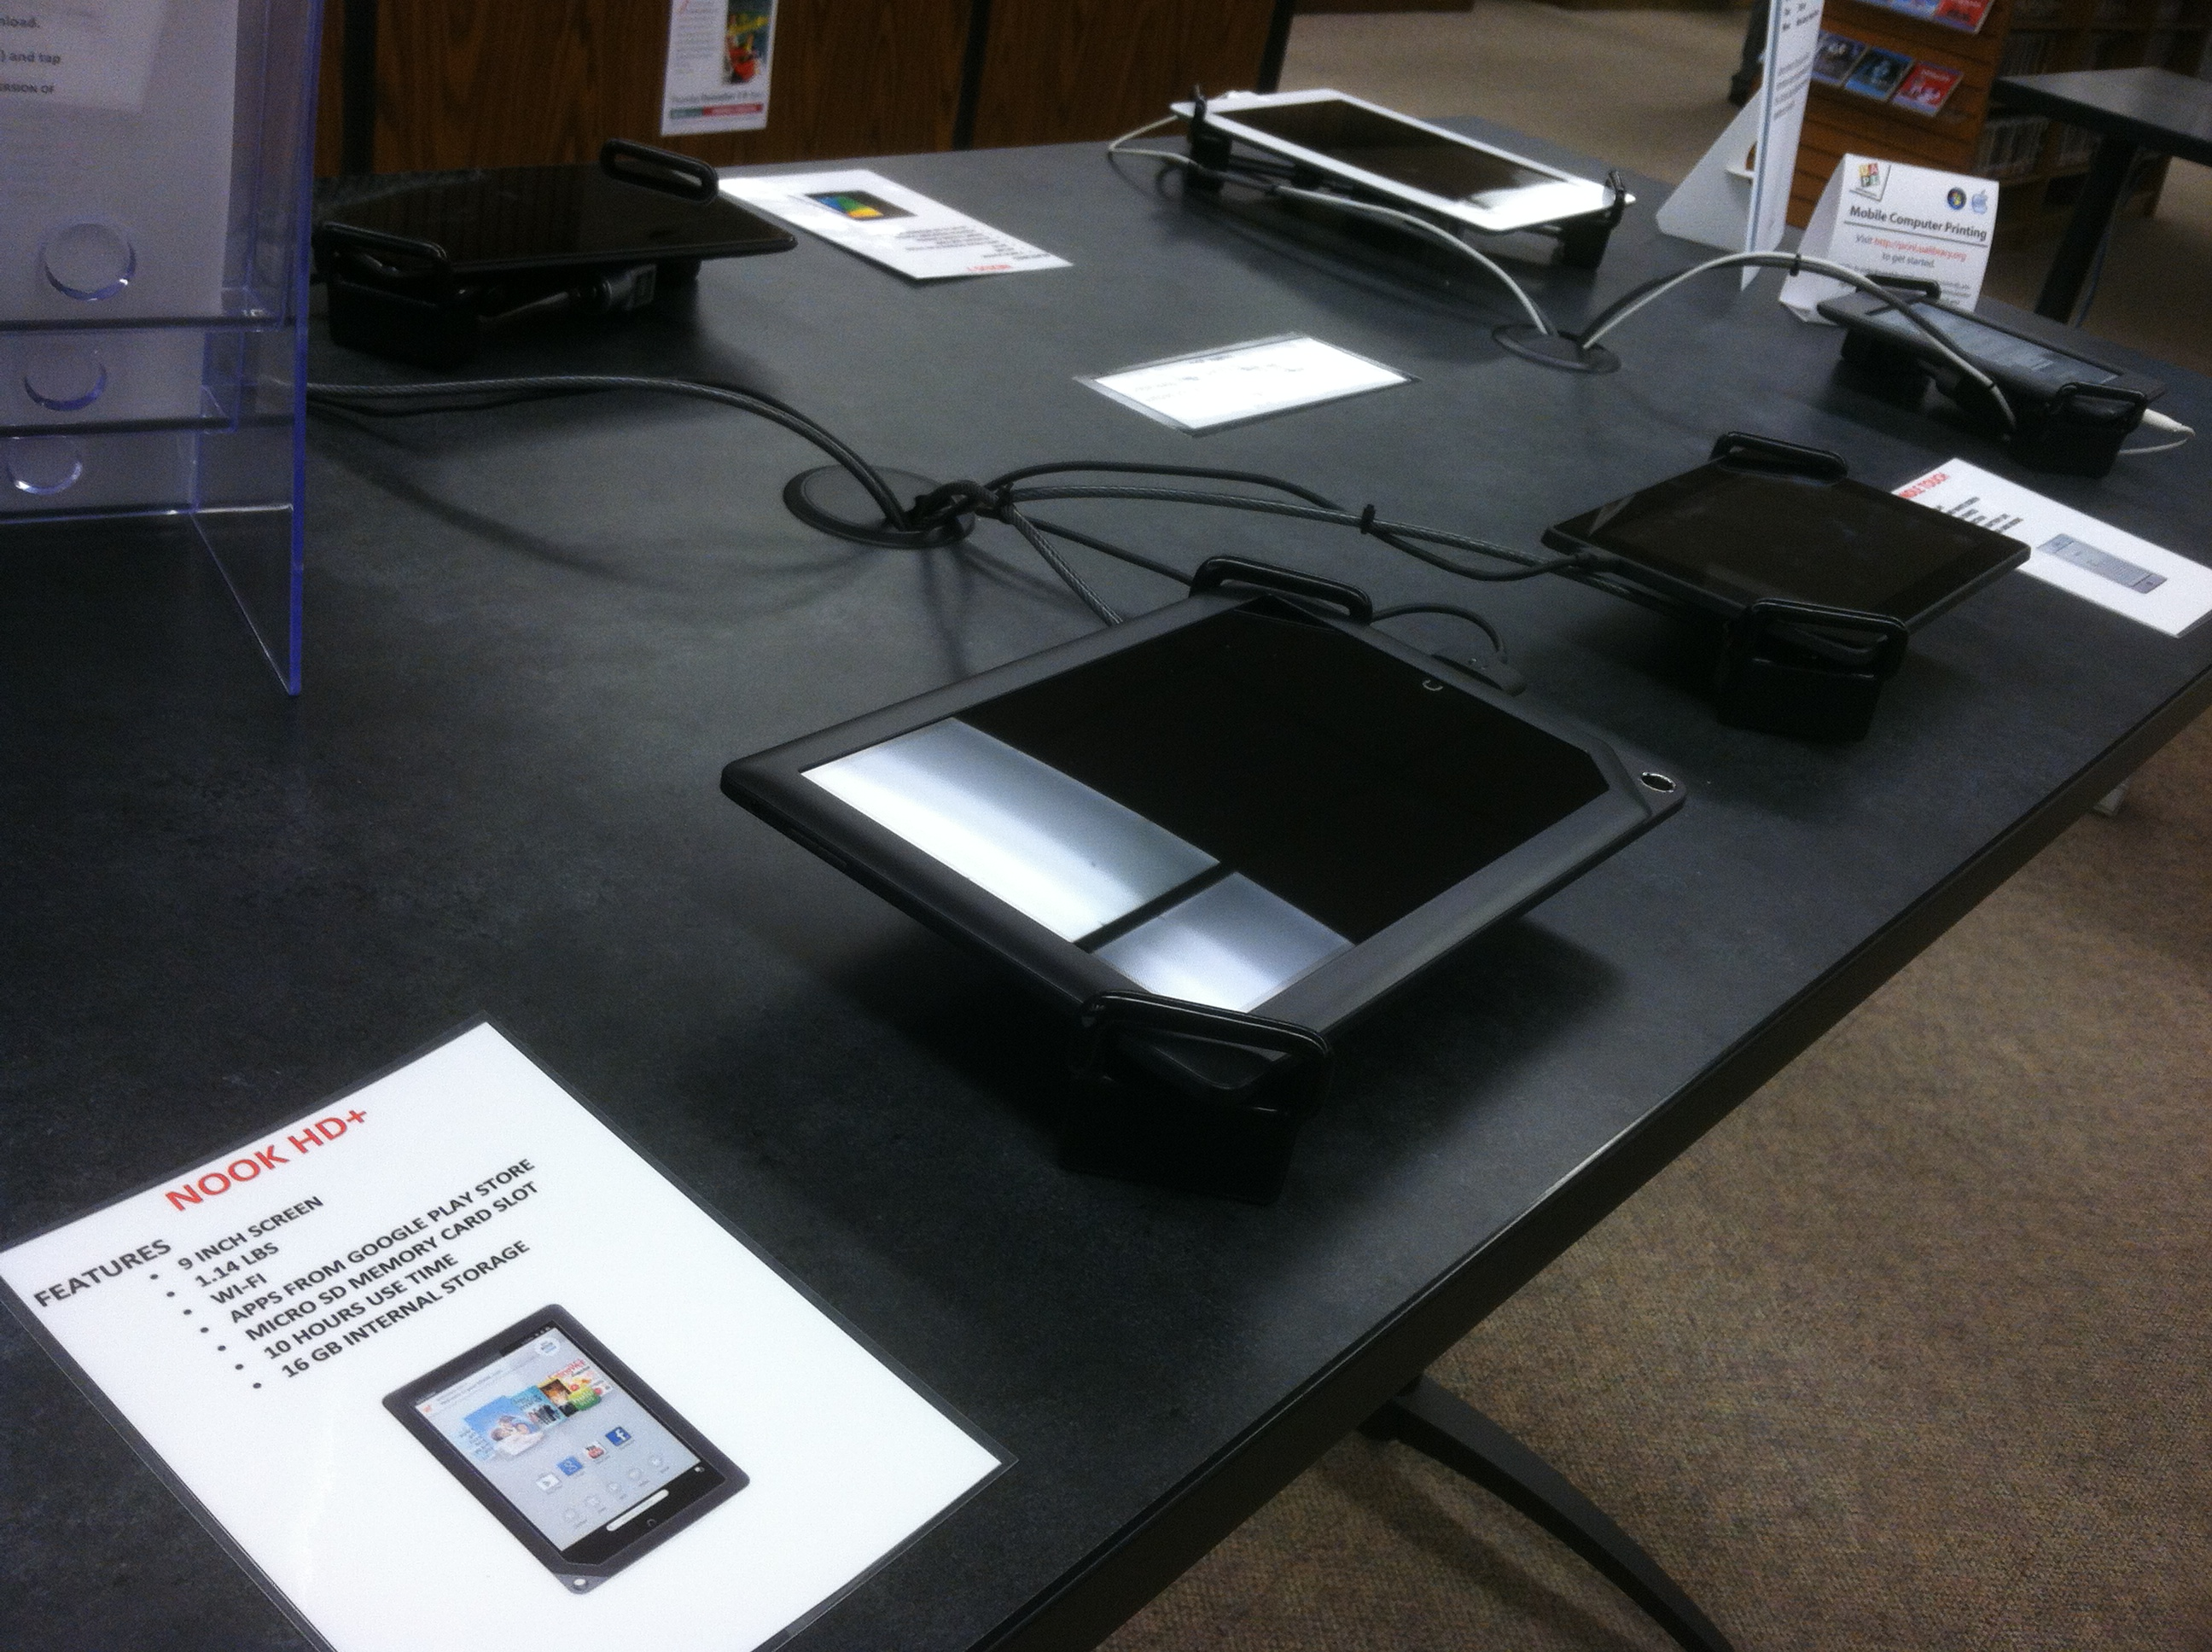 Tablets on a table